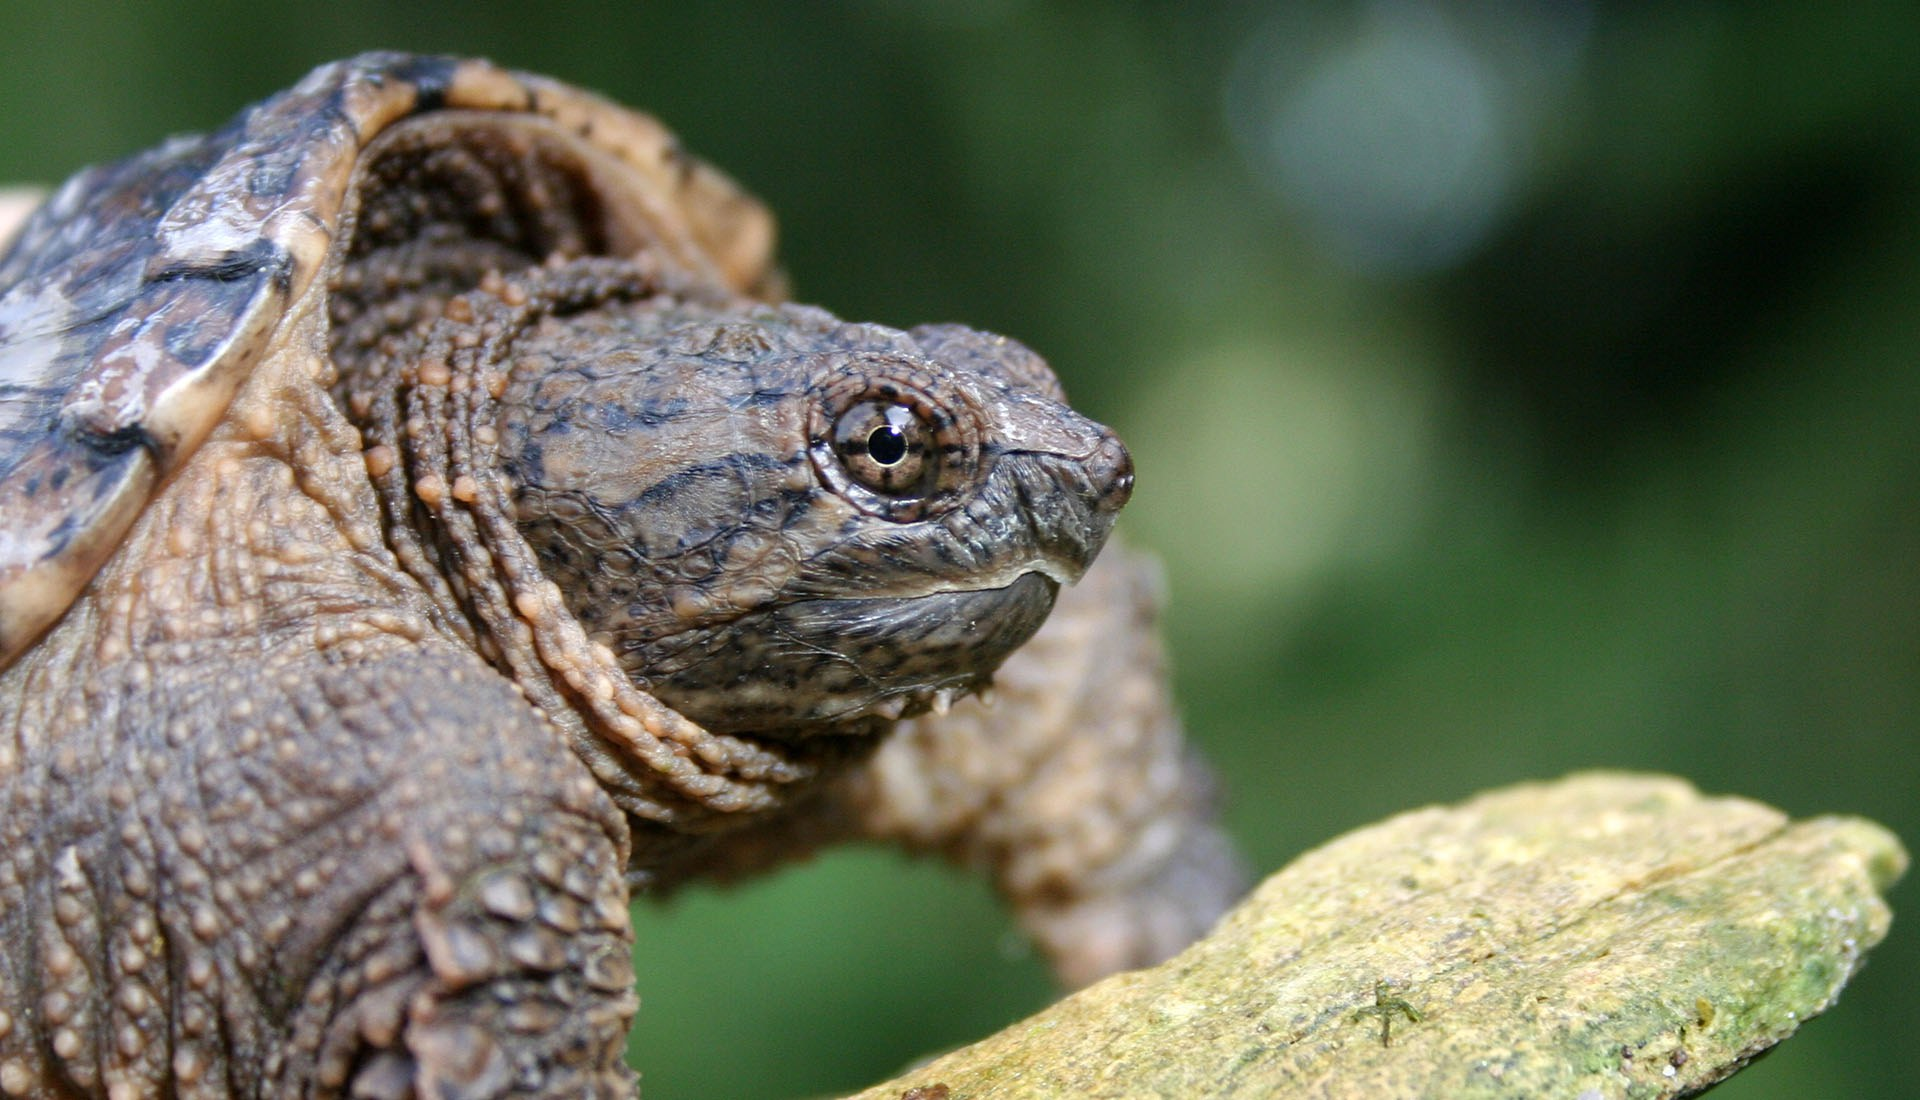 Snapping turtle at Fleetwood property